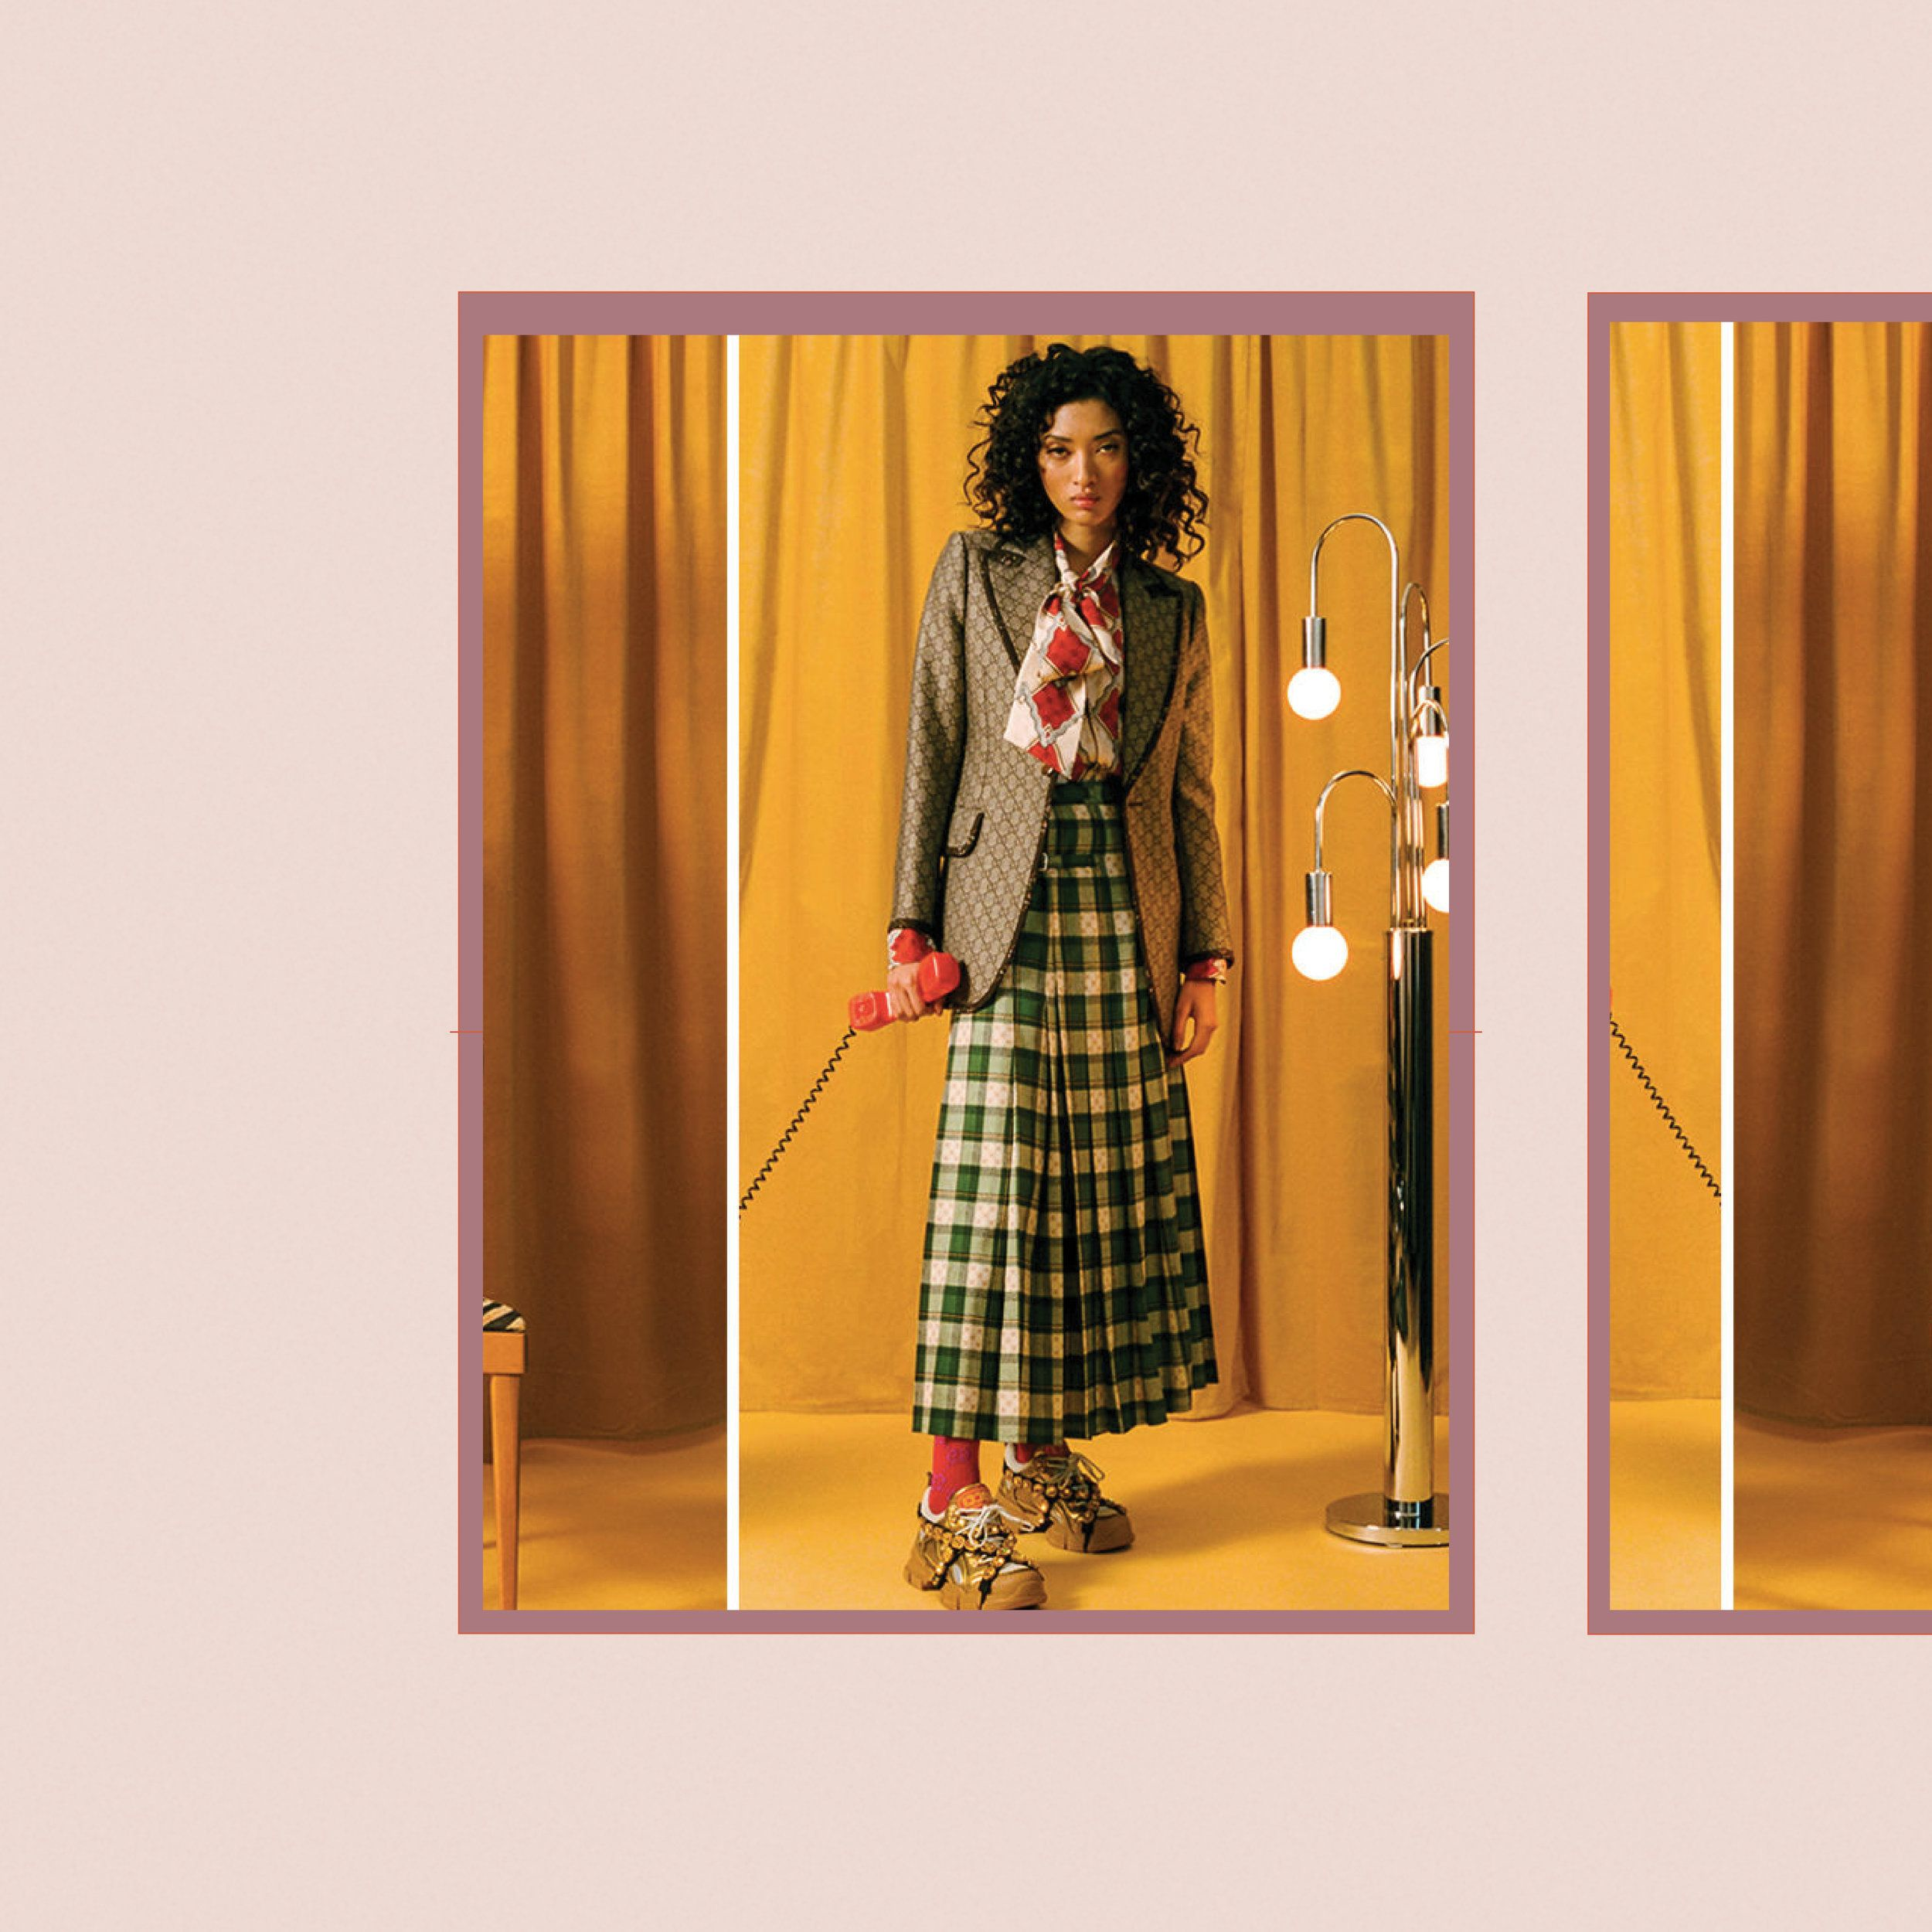 61afebc31ce Gucci Continues to Bolster Its Rhyton and Flashtrek Silhouettes for Cruise  2019 Collection  GucciVintage  Rhyton  Flashtrek  Silhouettes   CruiseCollection ...